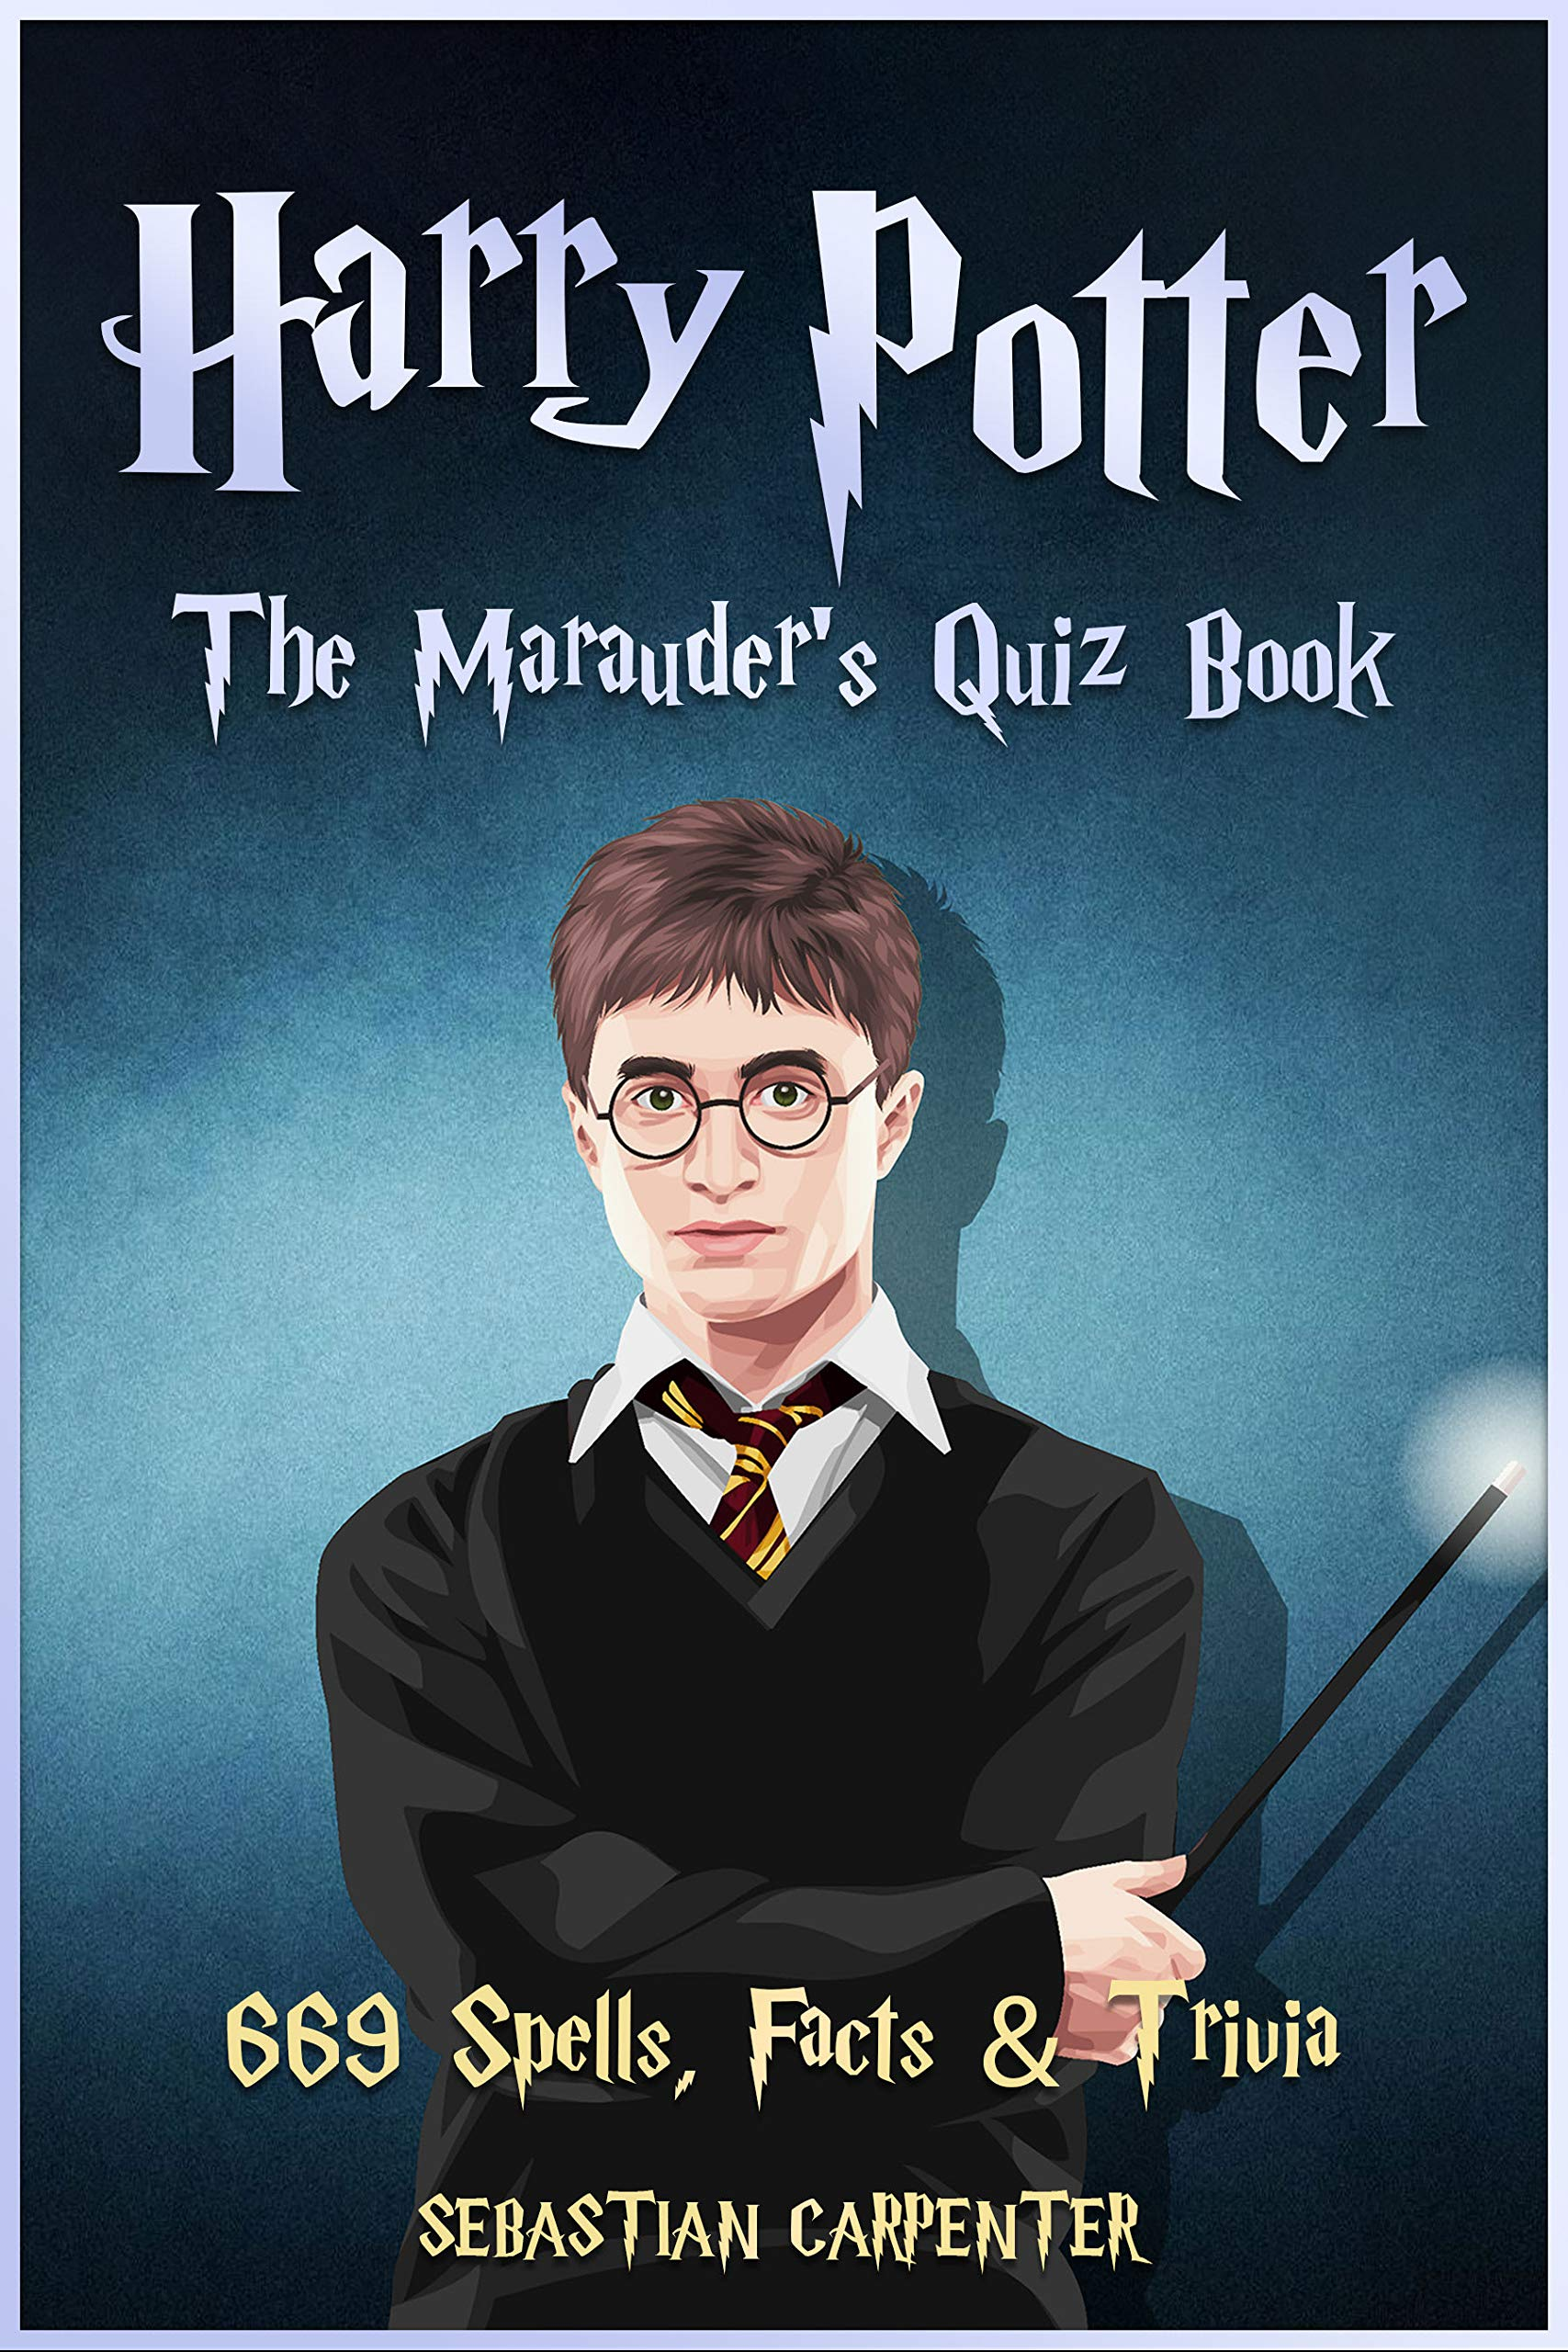 Harry Potter: The Marauder's Quiz Book: 669 Spells, Facts & Trivia